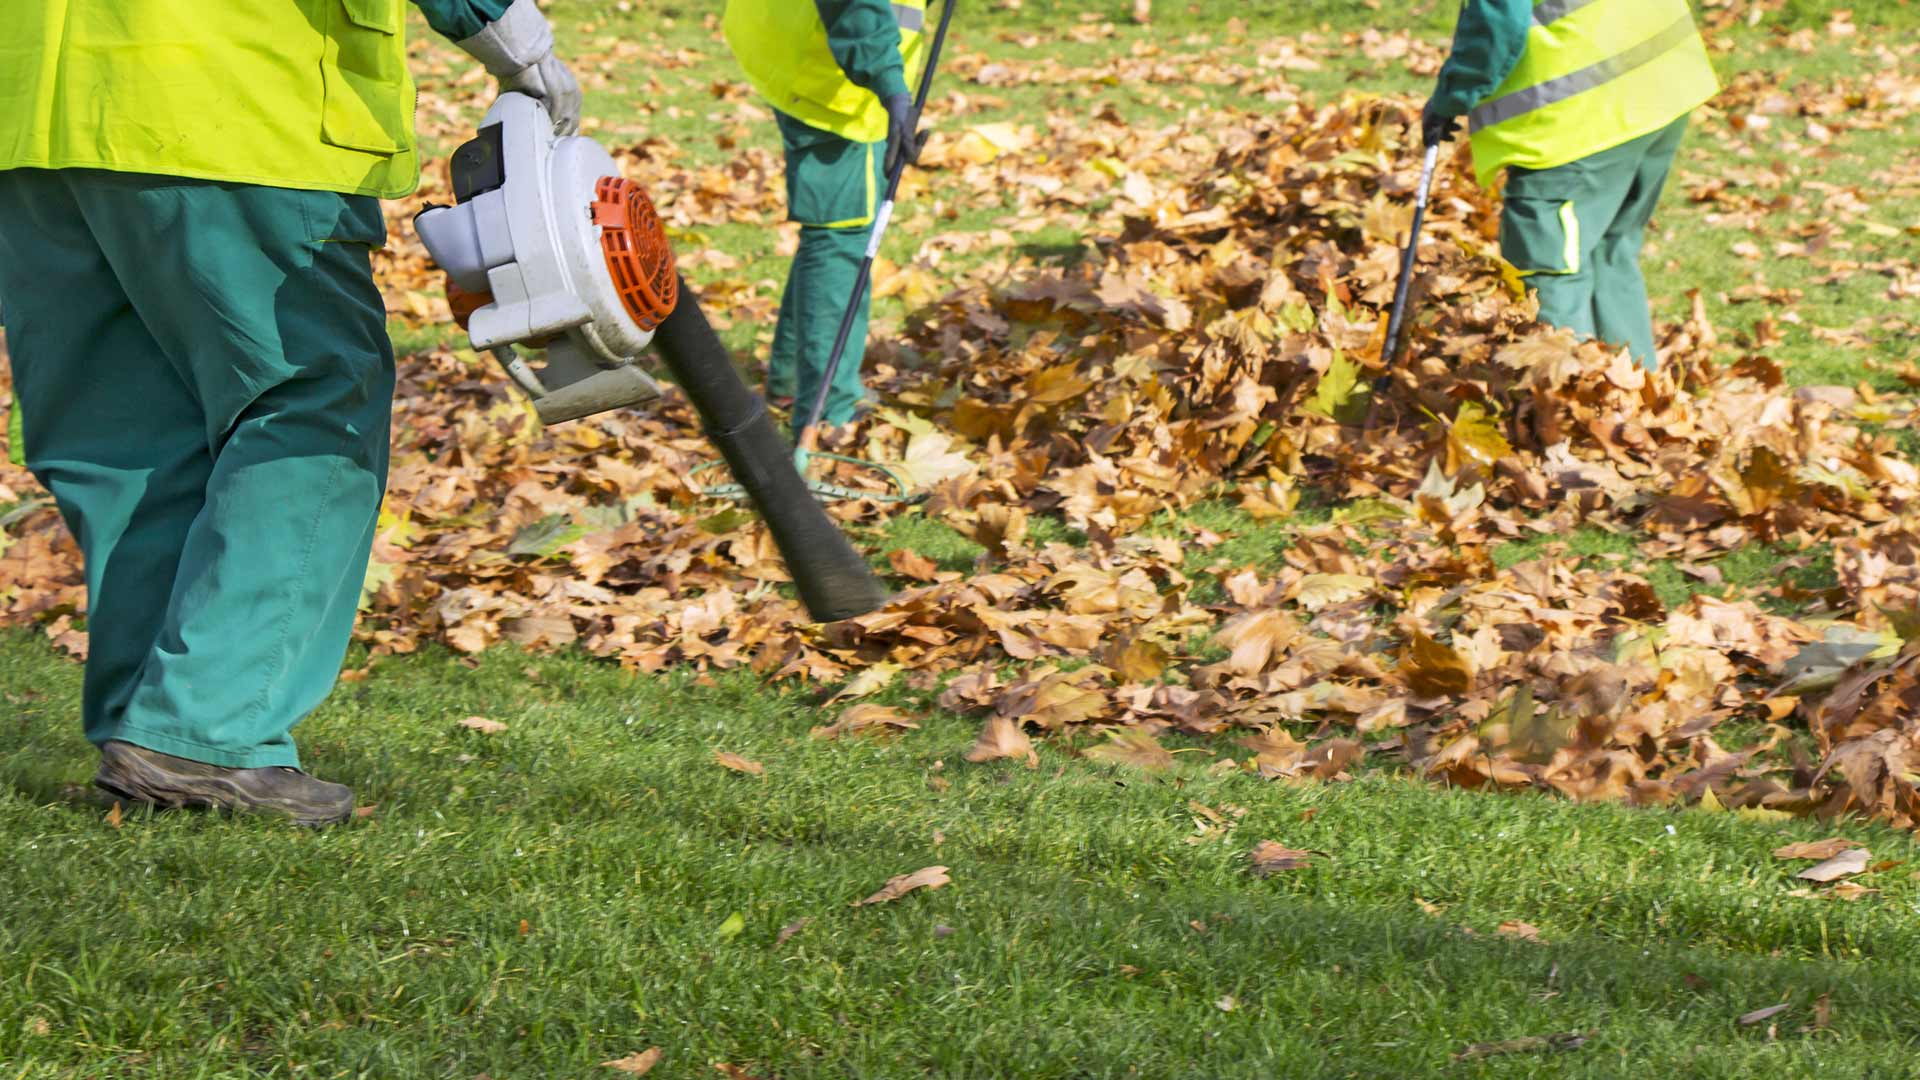 Landscape workers clearing yard of fall leaves in Cascade, MI.